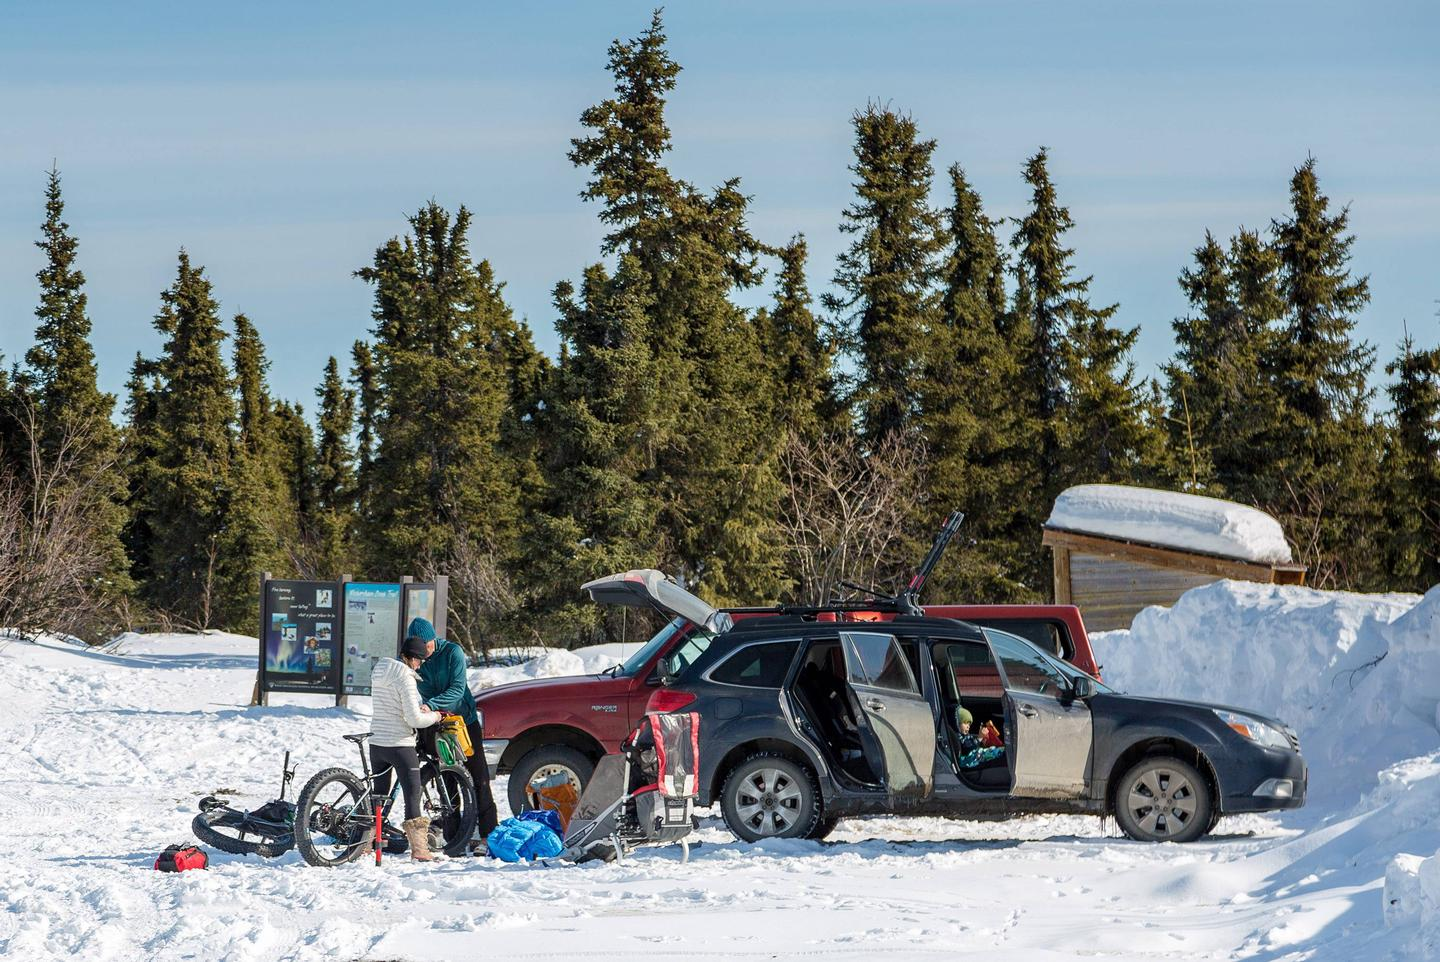 A family prepares camping gear and bicycles next to a car.Wickersham Dome Trailhead on the Elliott Highway is the busiest access point for trips into the White Mountains National Recreation Area.